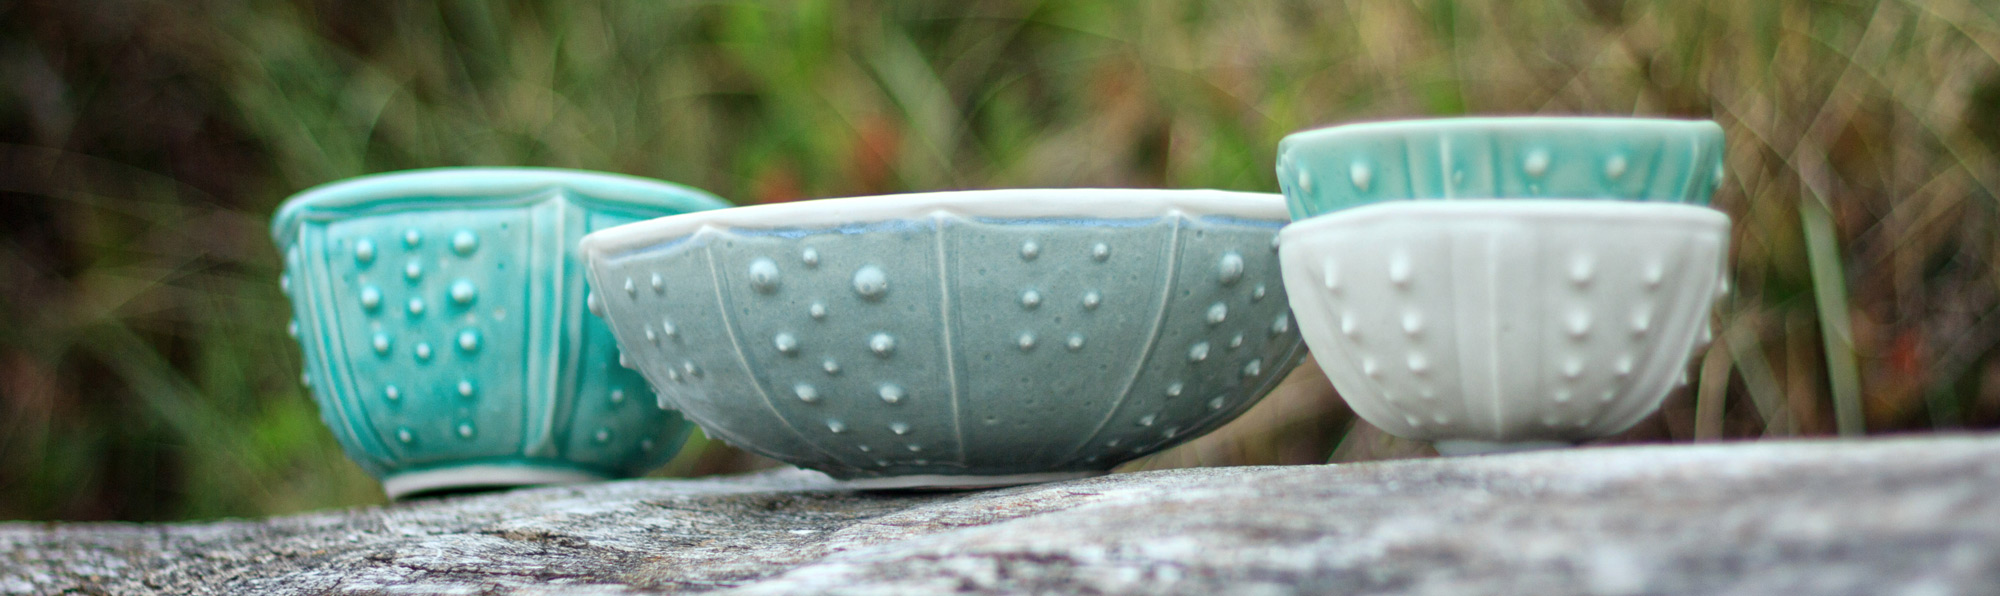 Urchin bowls - sea urchin porcelain bowls, sea life ceramics by Emily Miller